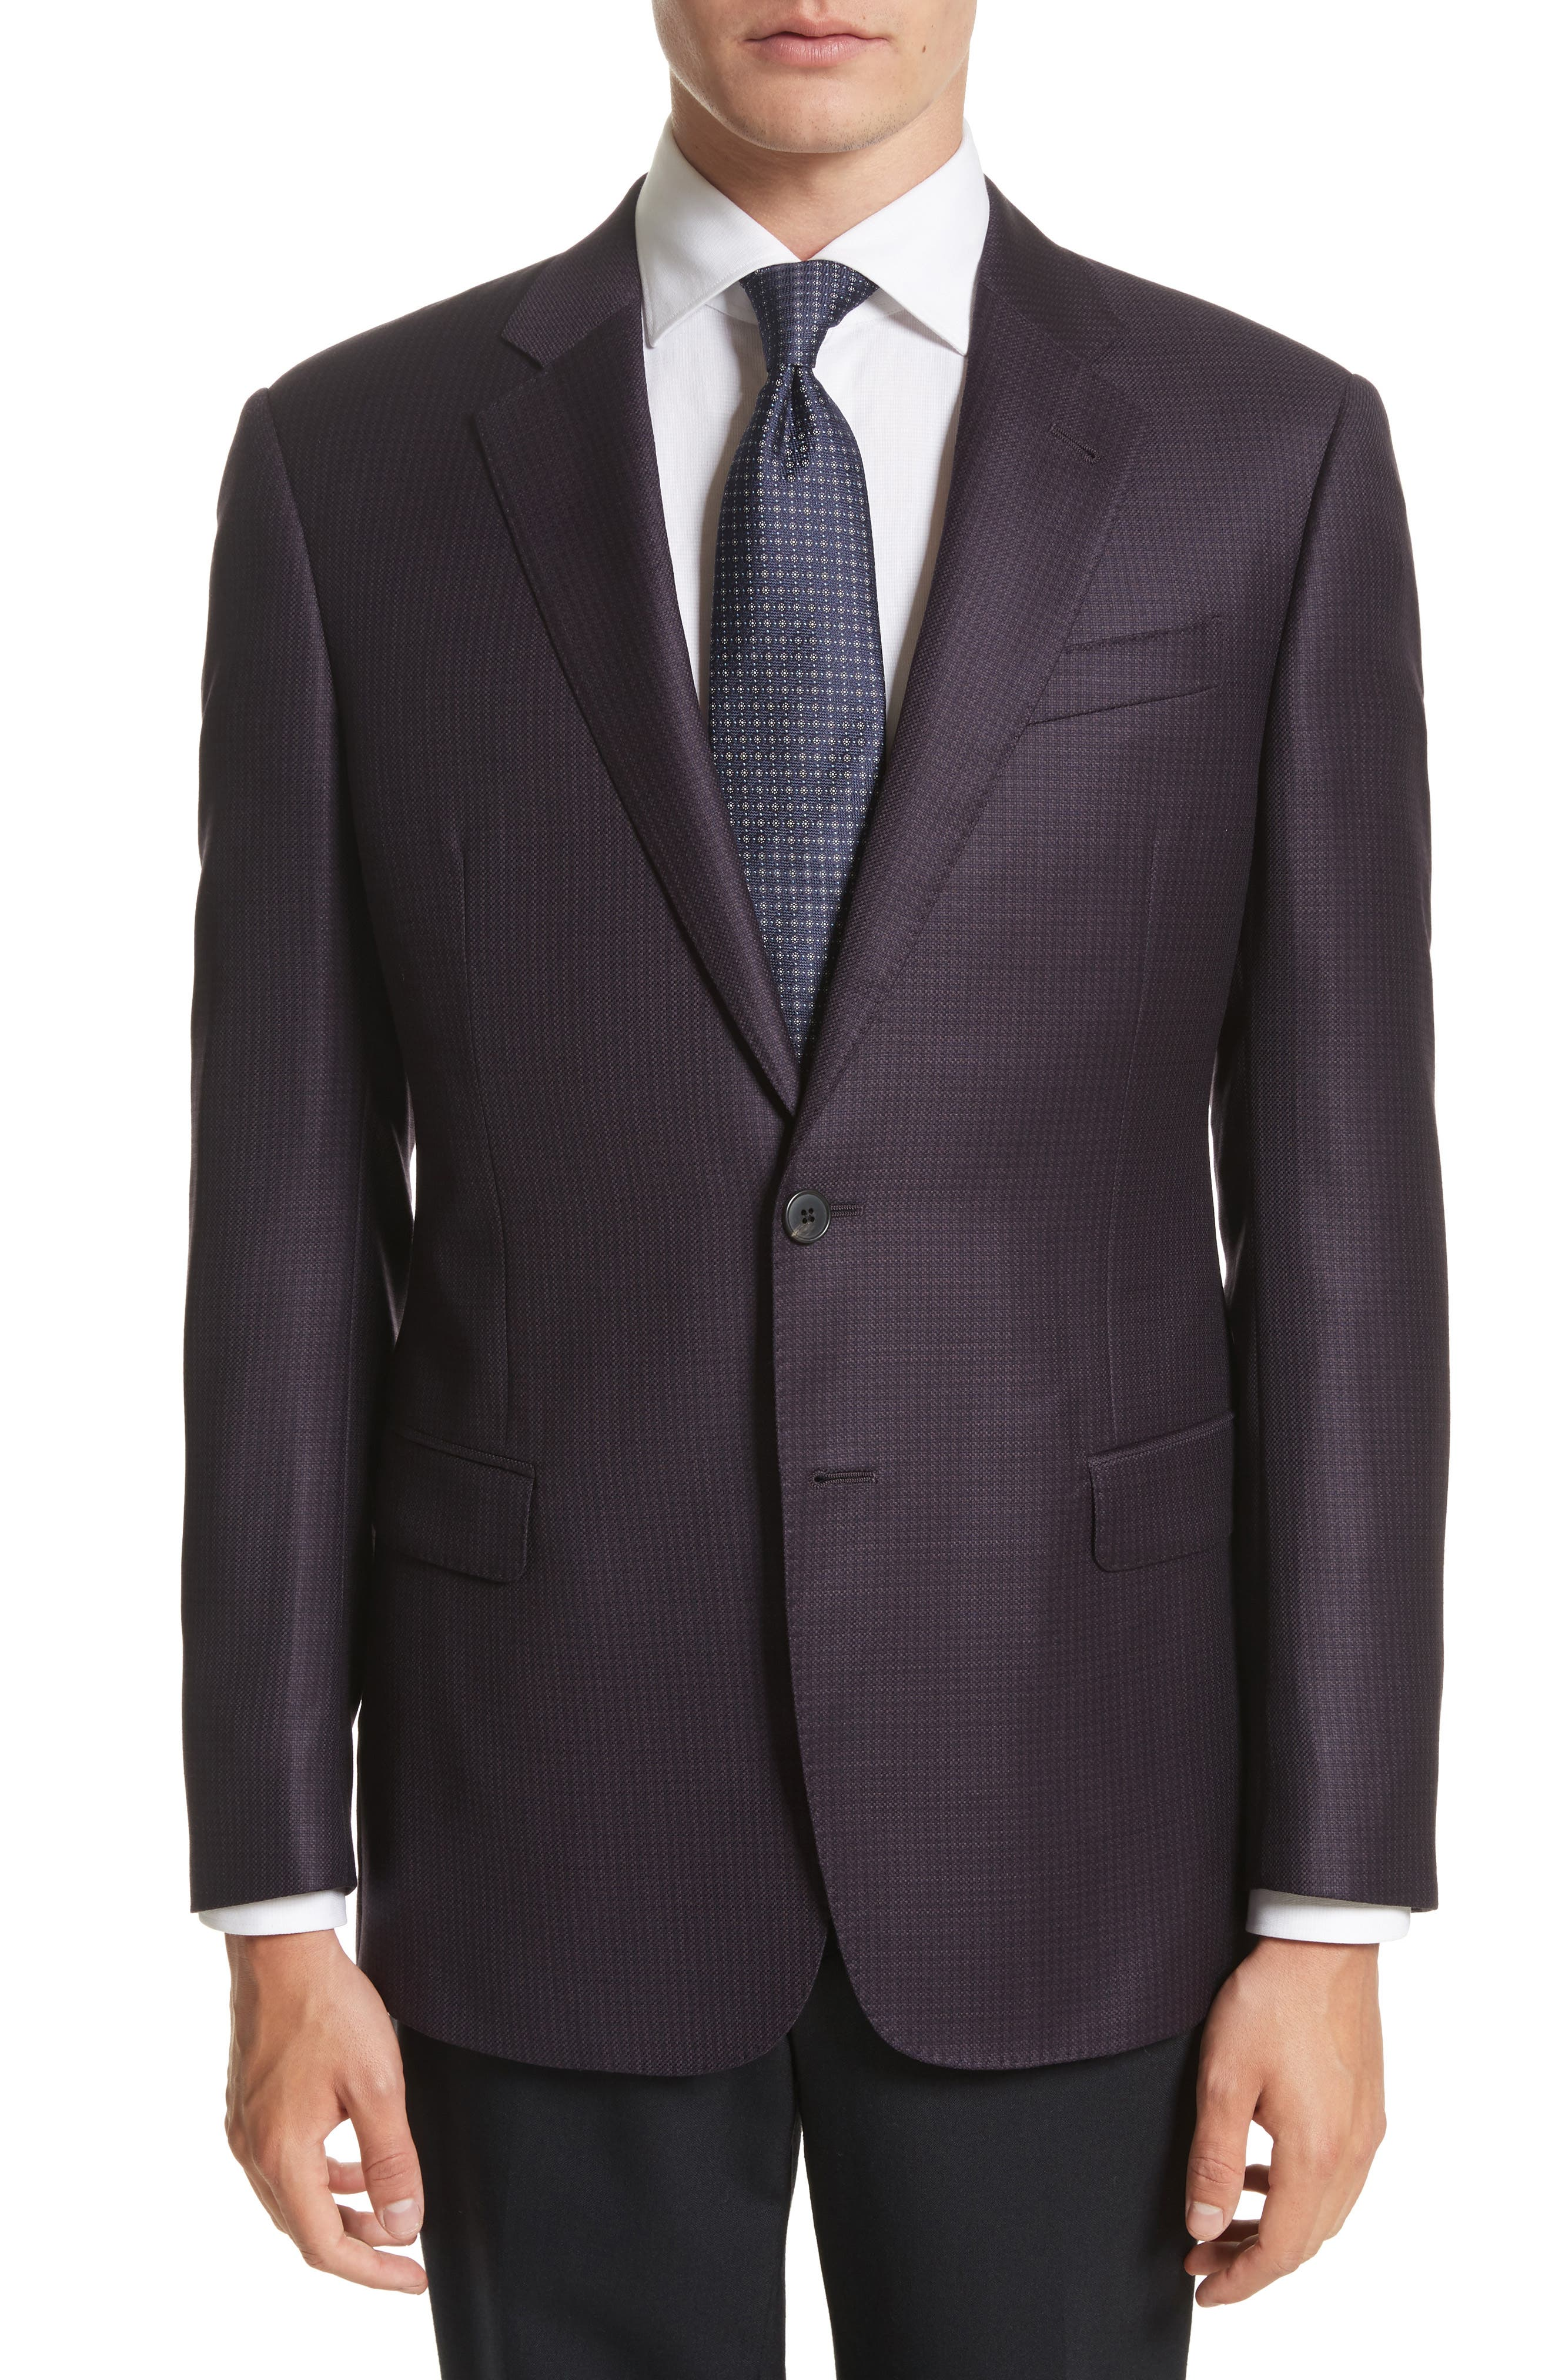 Alternate Image 1 Selected - Armani Collezioni G-Line Trim Fit Houndstooth Wool Sport Coat